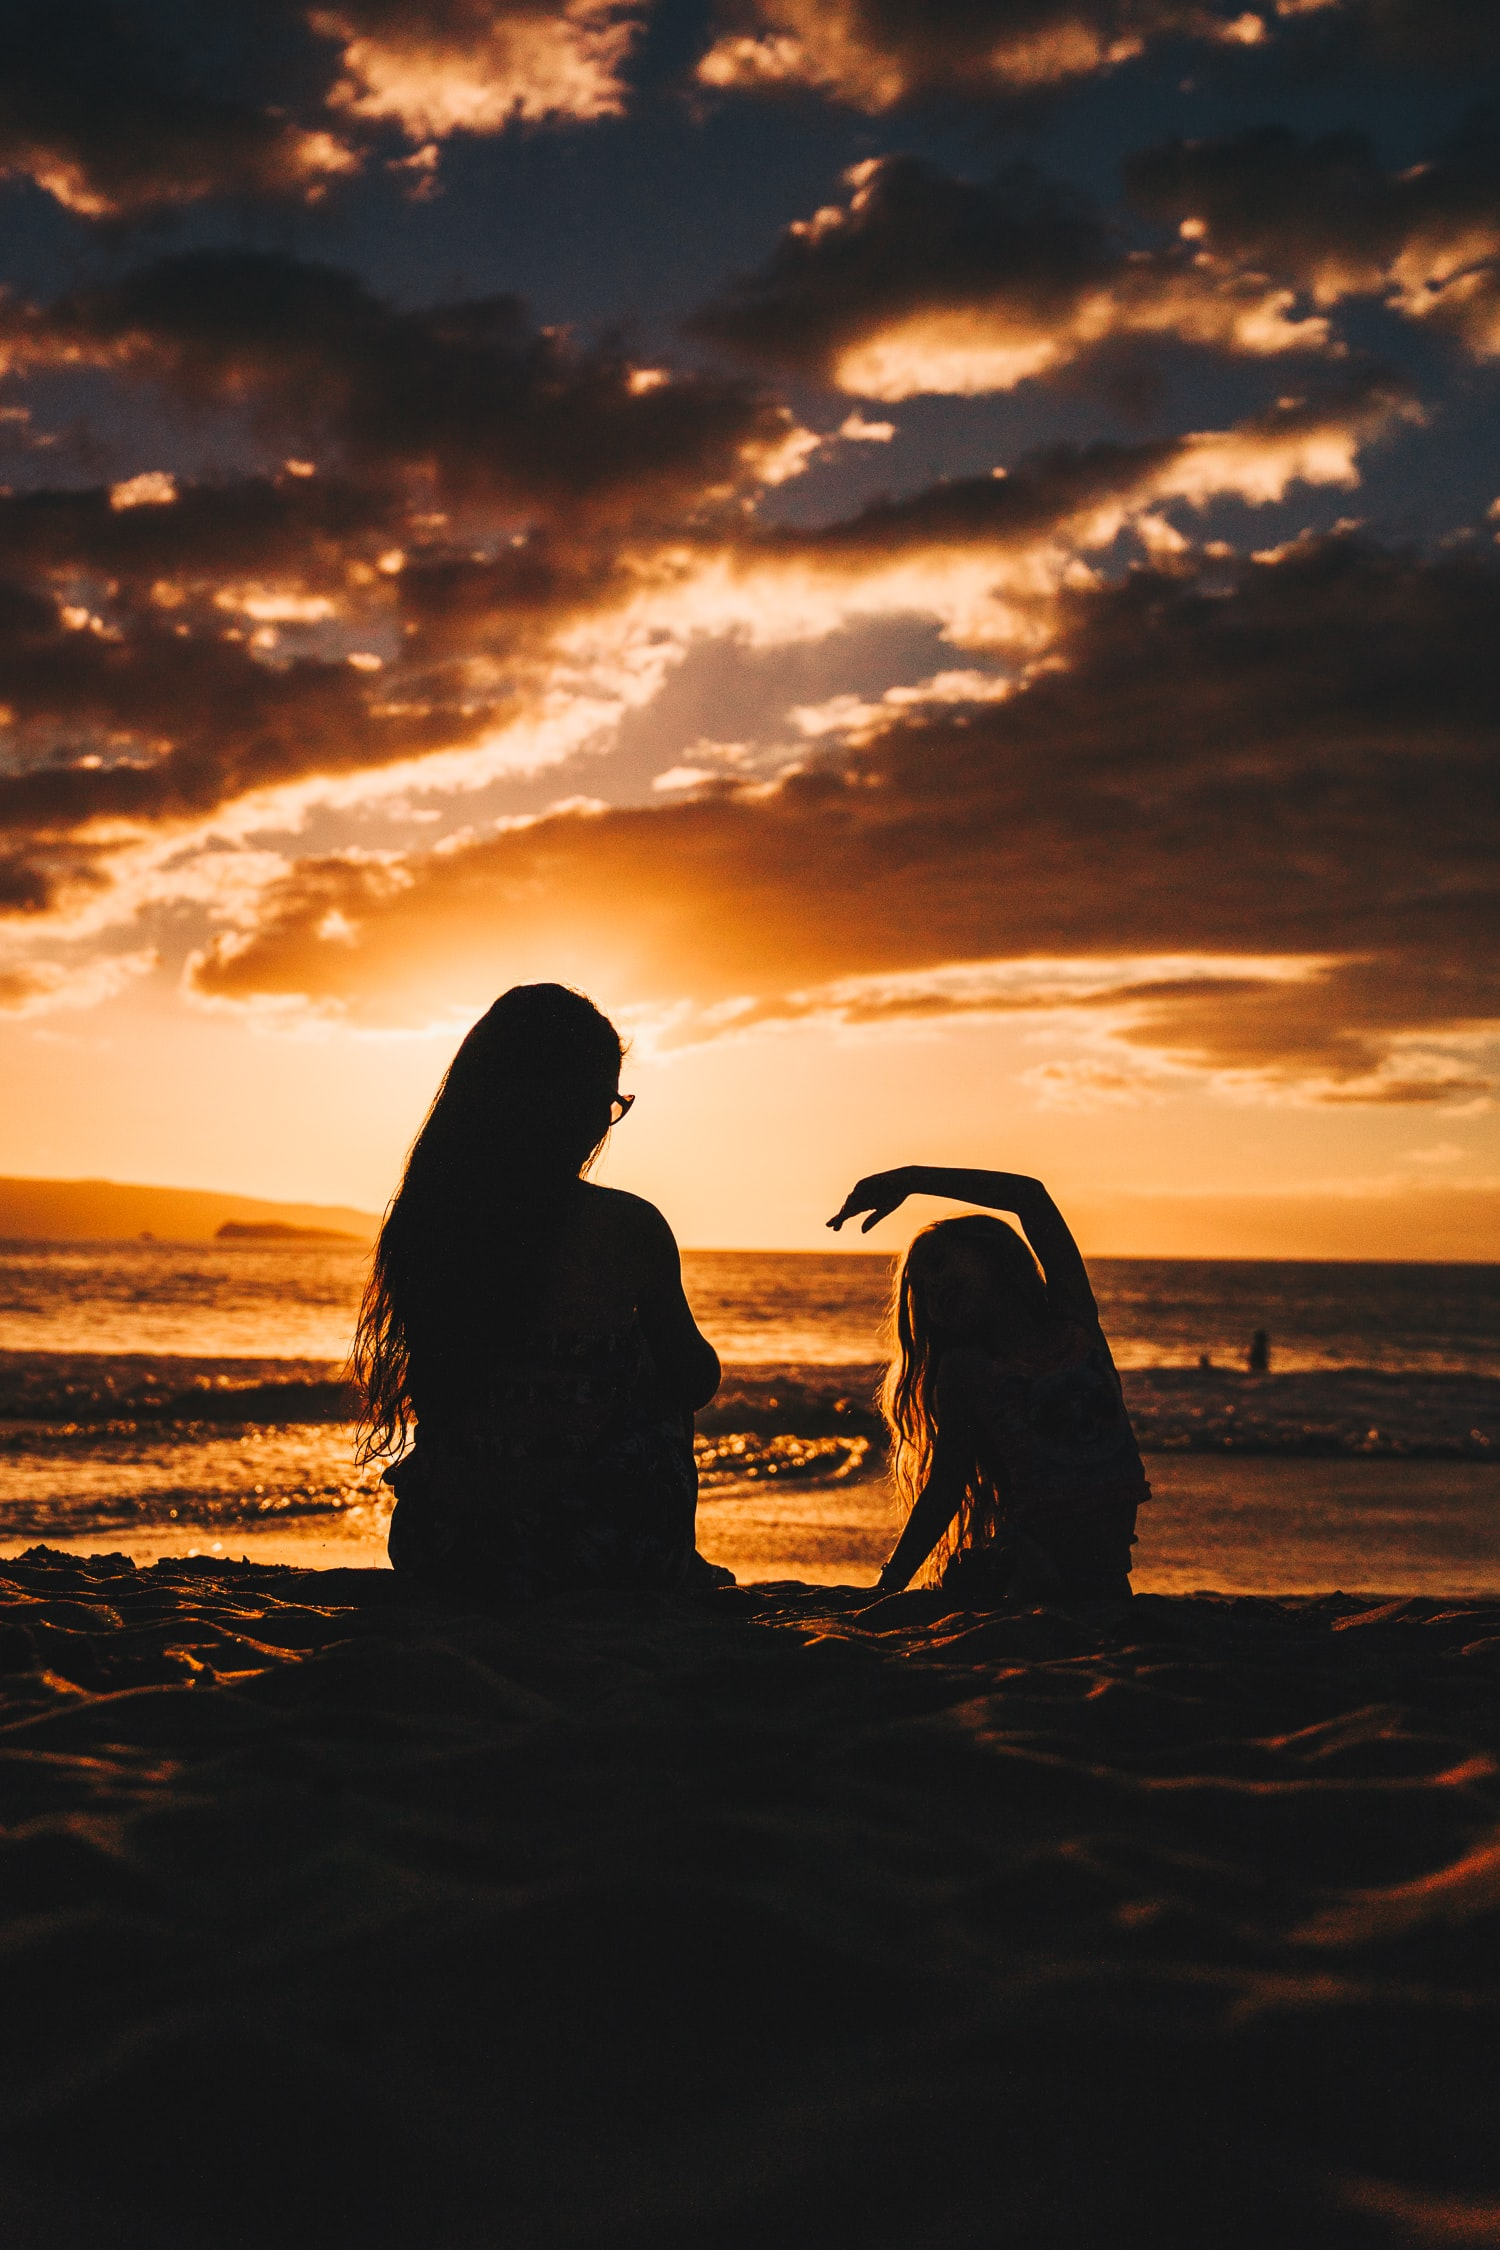 silhouette photo of woman and girl on shoreline